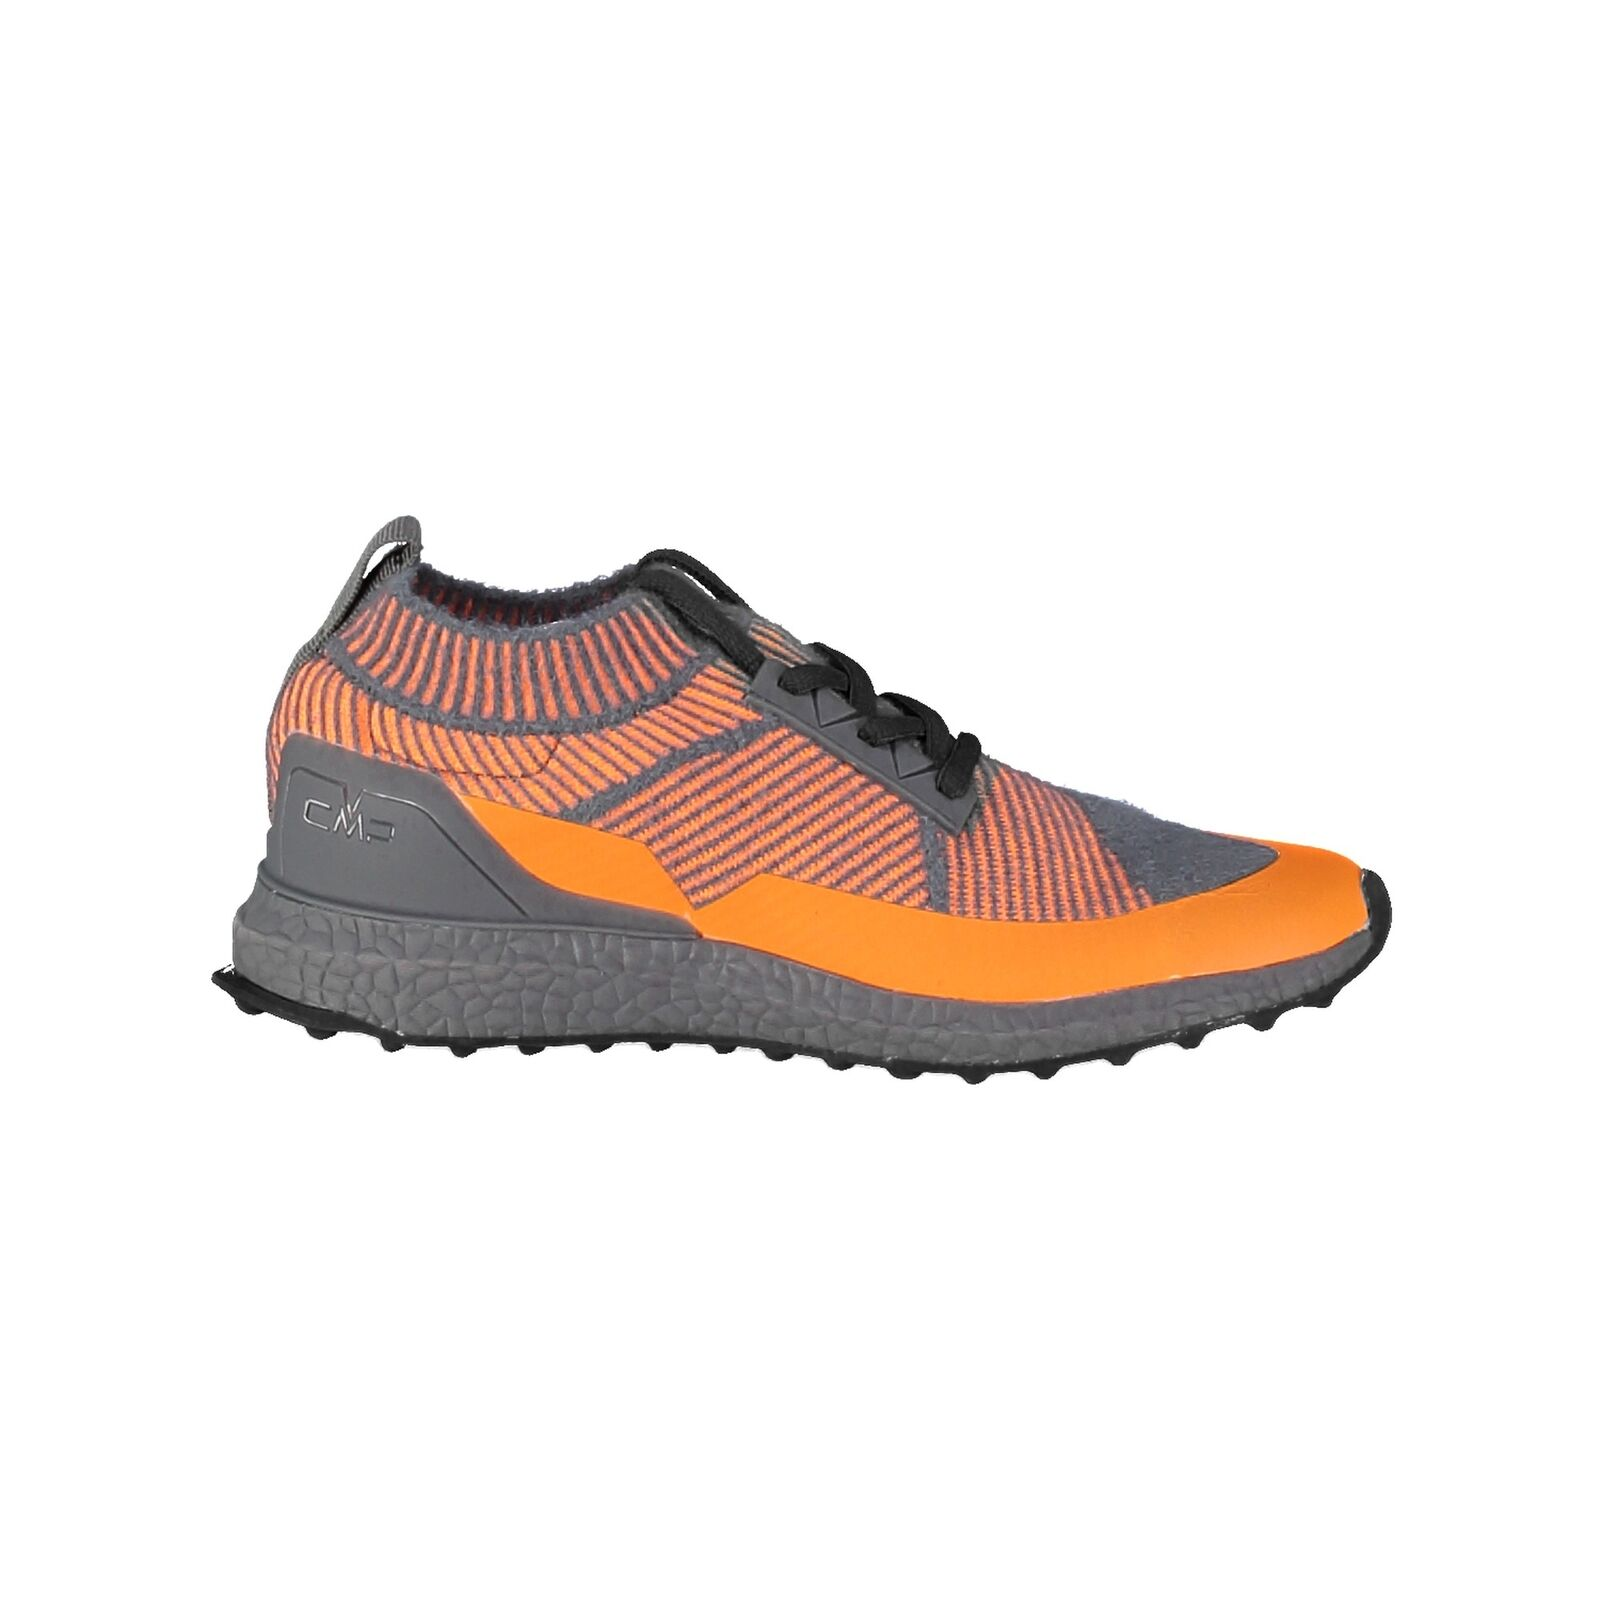 CMP Zapatillas de Deporte Gimanasia Nembus Lana Wmn Lifestyle orange Nailon